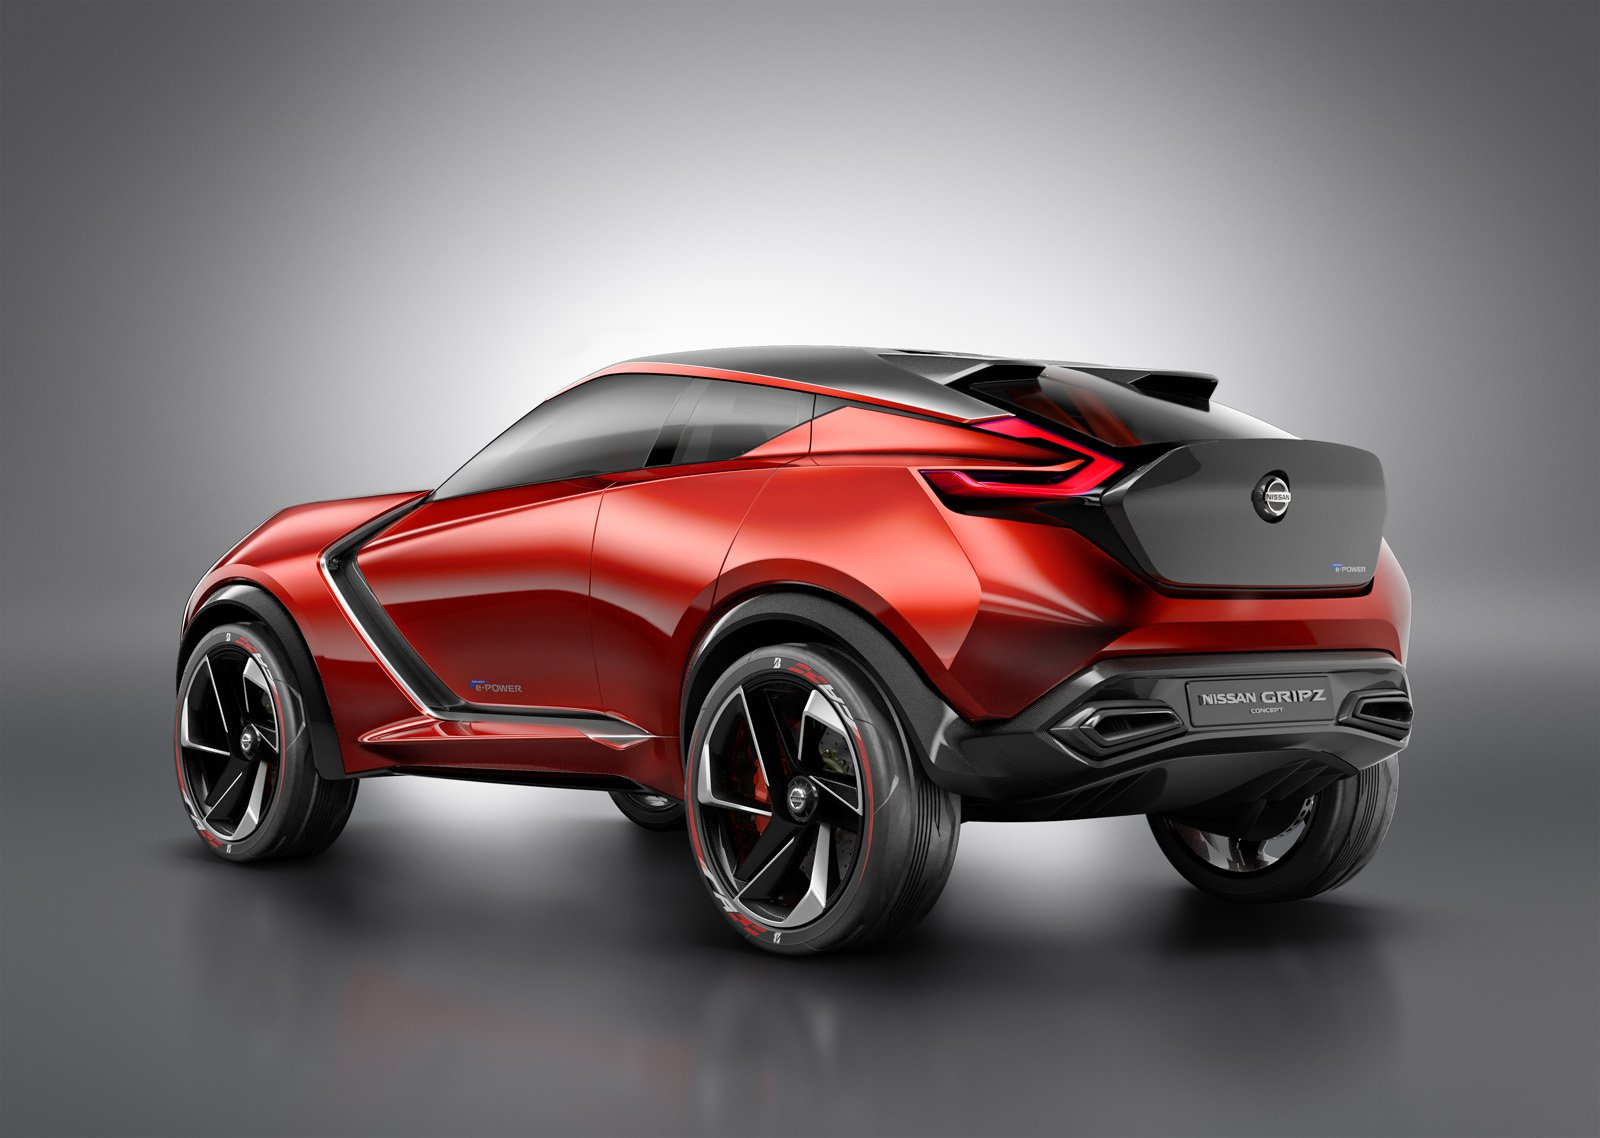 The New Nissan Juke 2017 Will Include Headlights Led Arrow Shaped Front Grille And A V